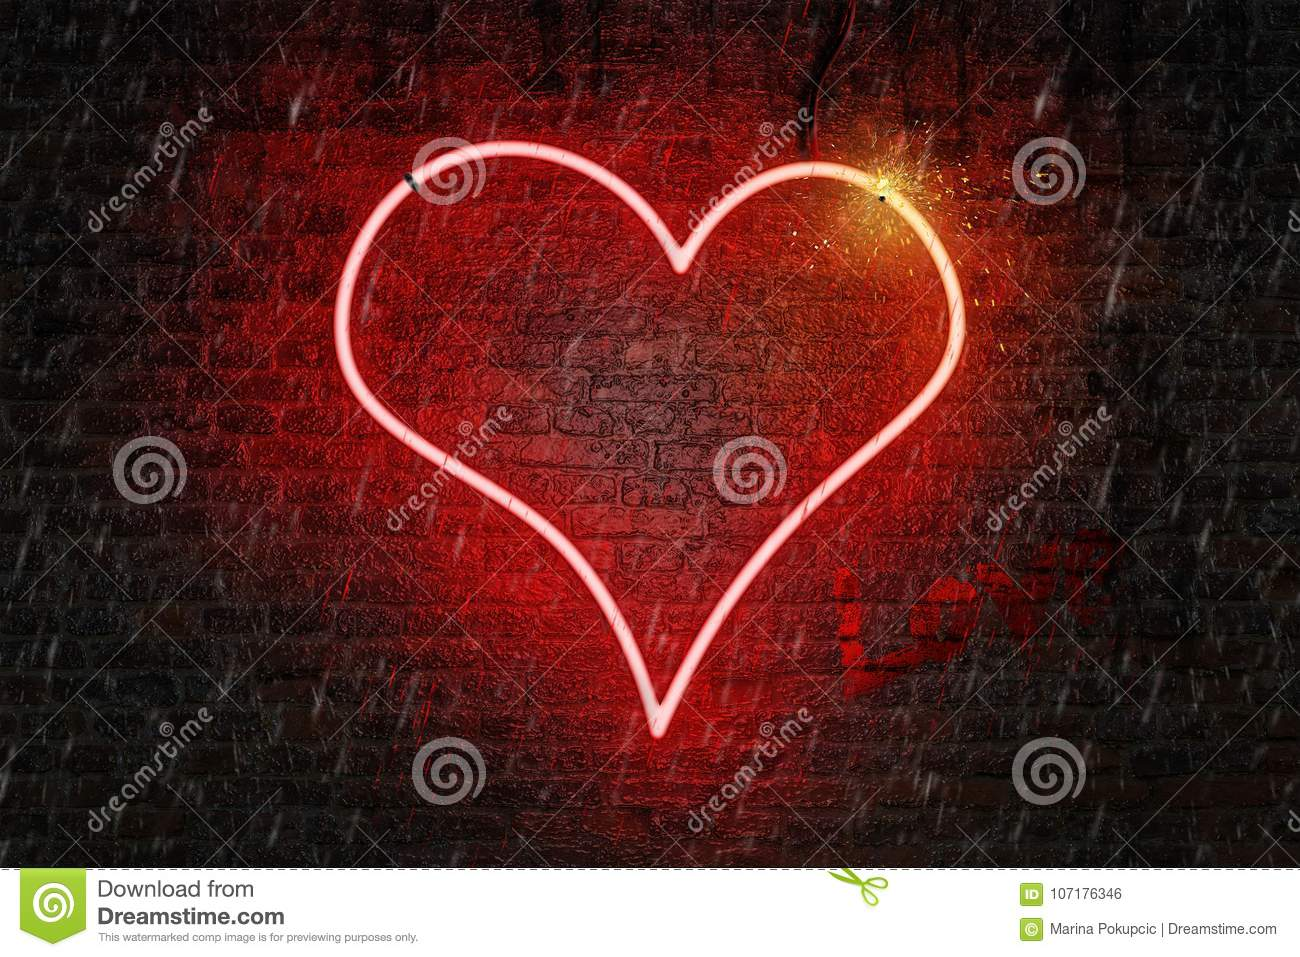 Red neon heart shaped sign on a wet brick wall